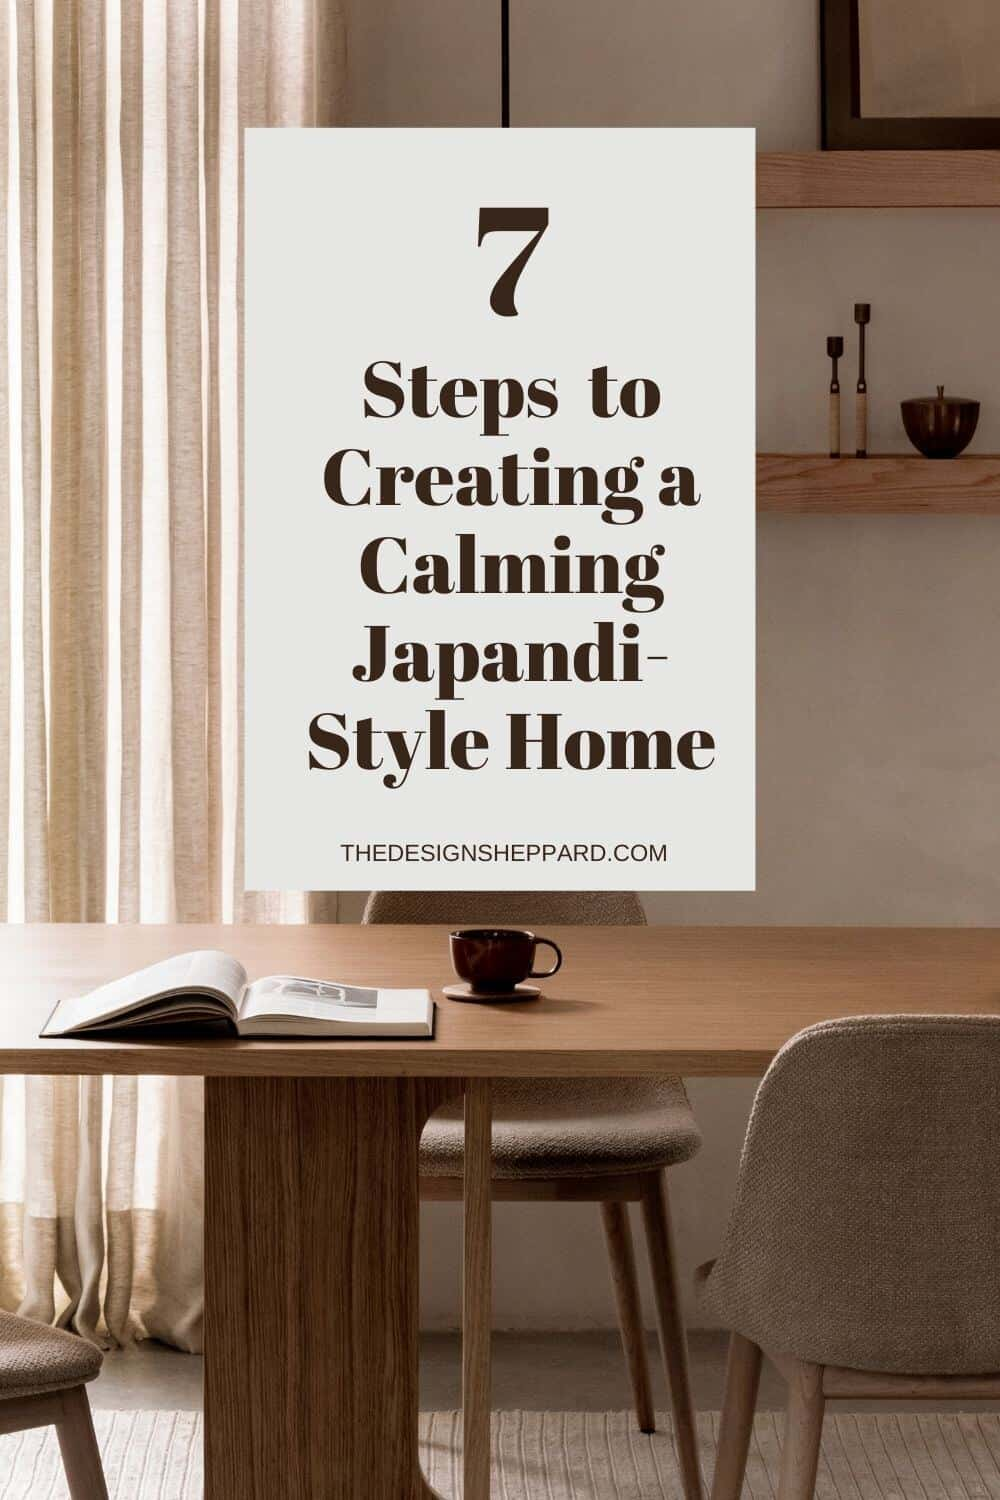 7 Steps to creating a Calming Japandi-Style Home